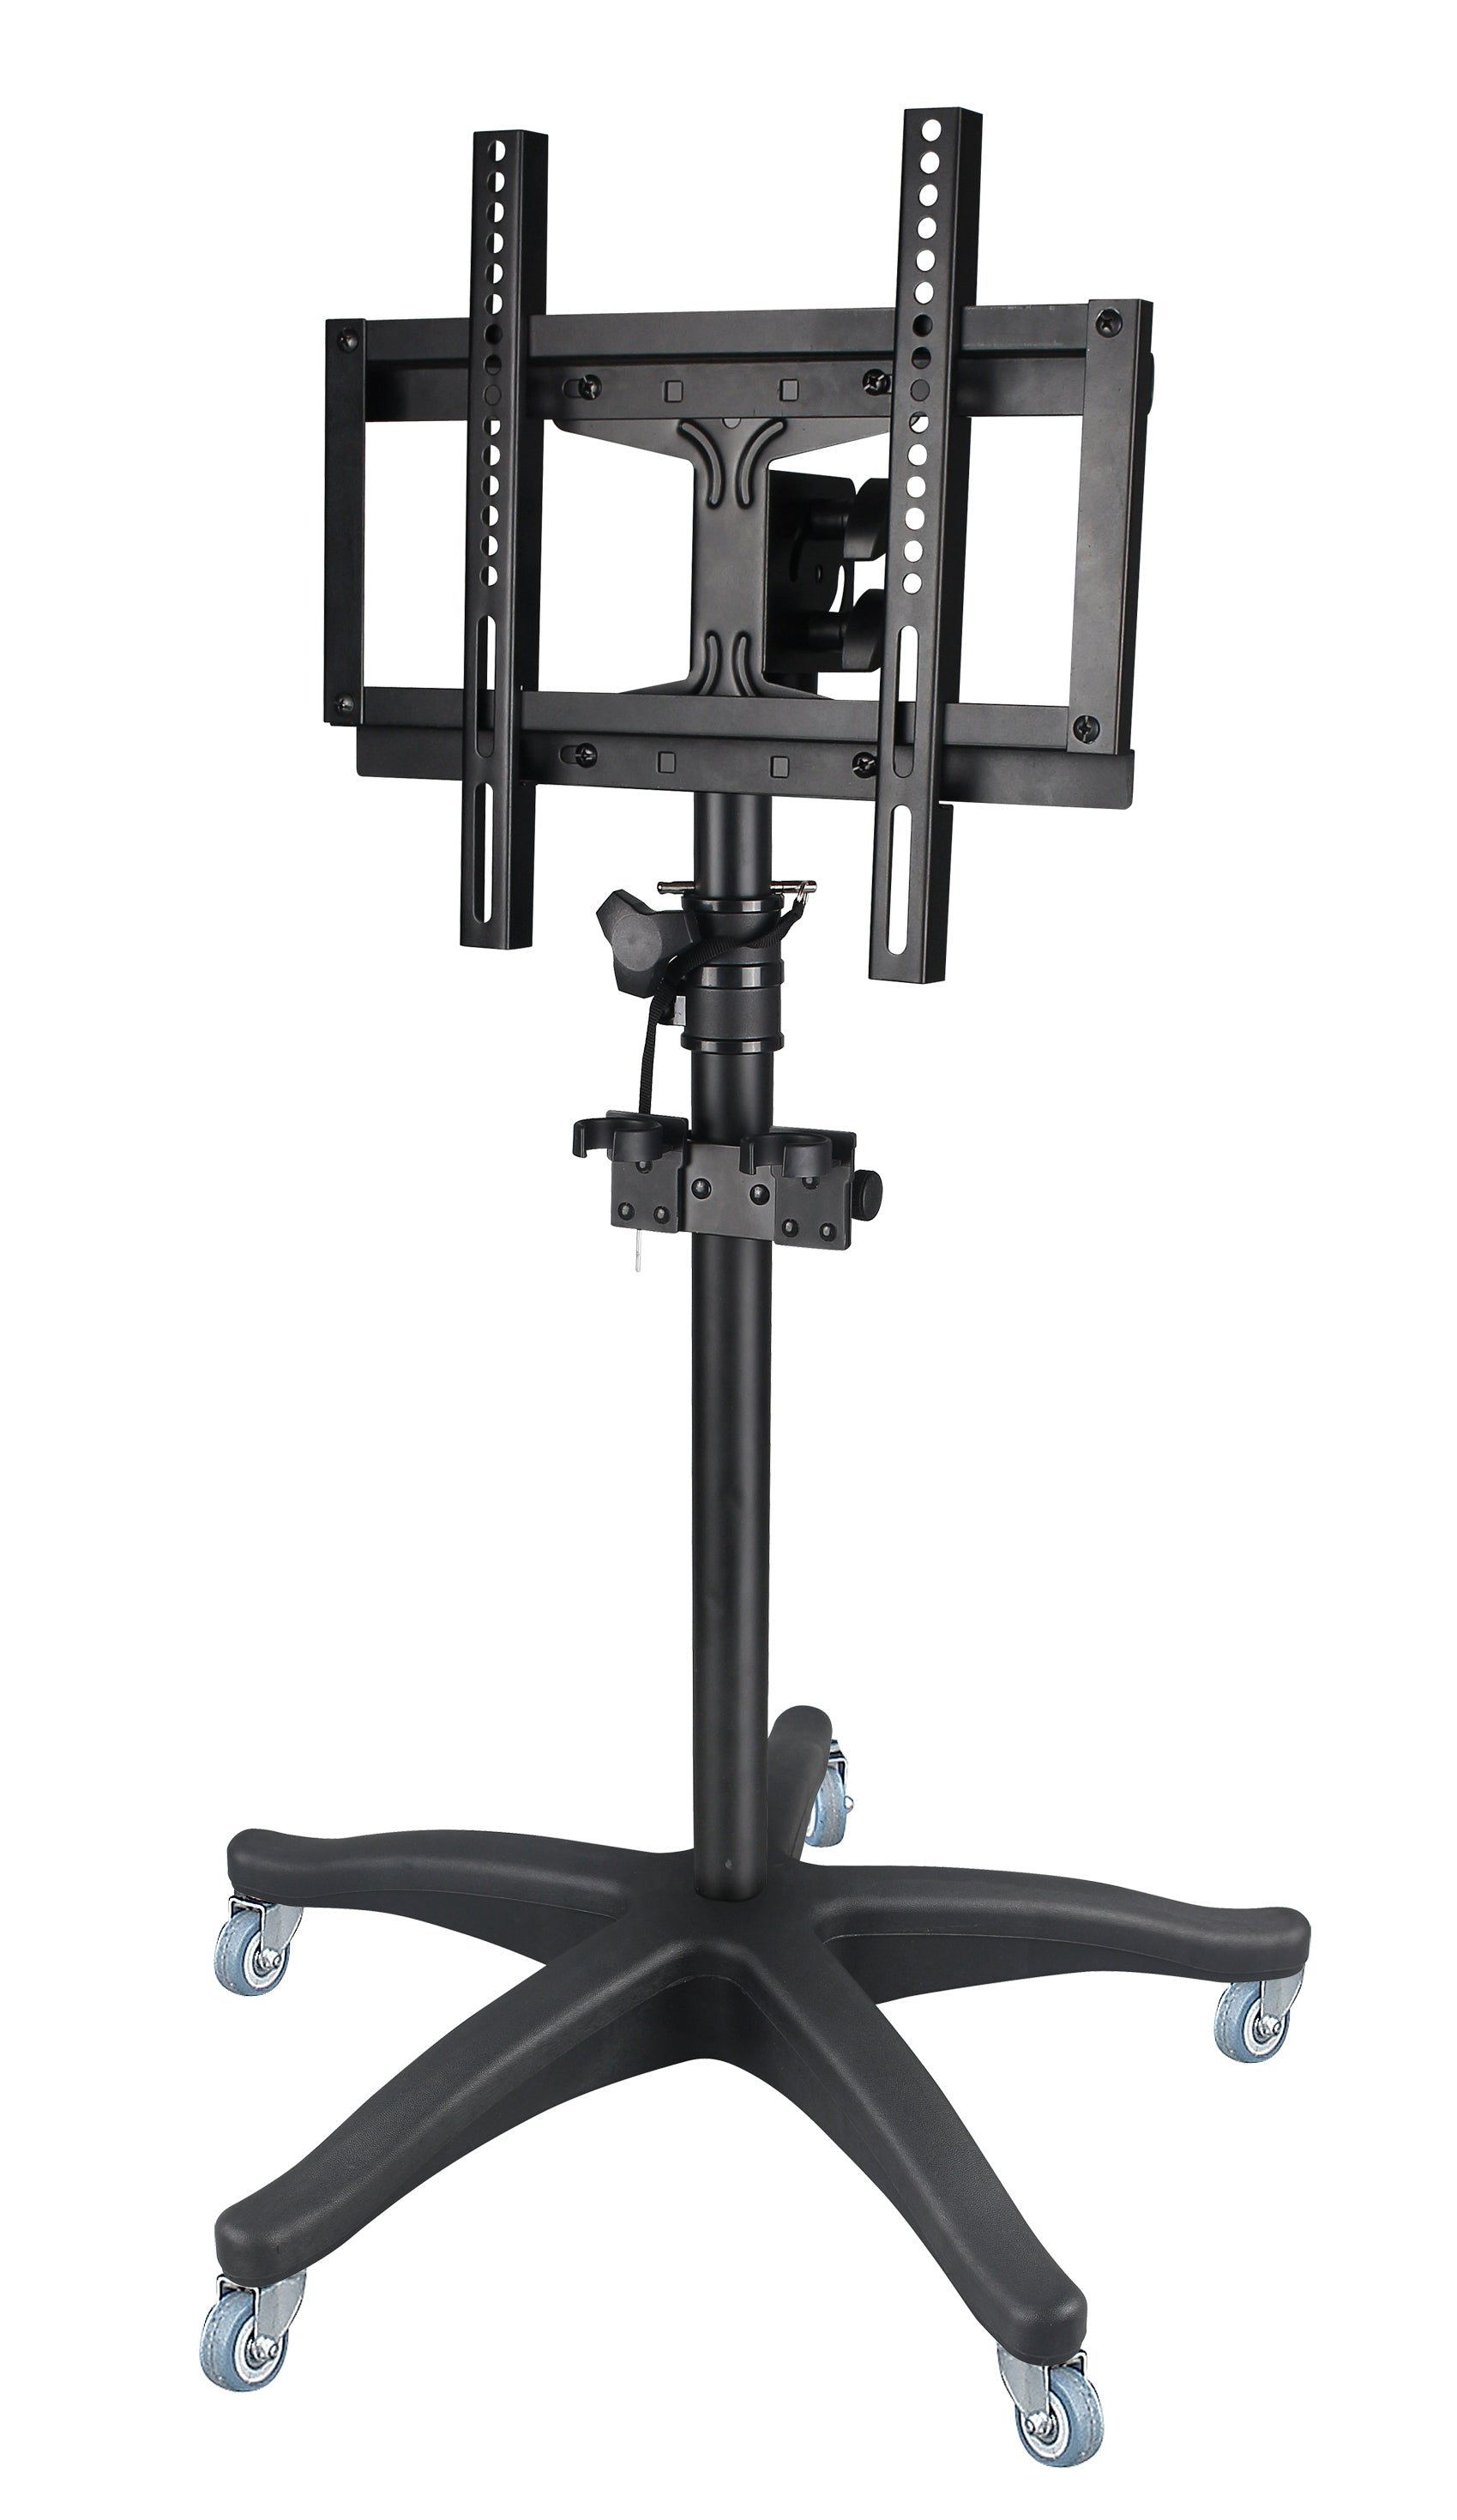 "64-1208 Universal Mobile Floor Stand Bracket for 14""-32"" LCD TV, up to 25kgs loading weight"